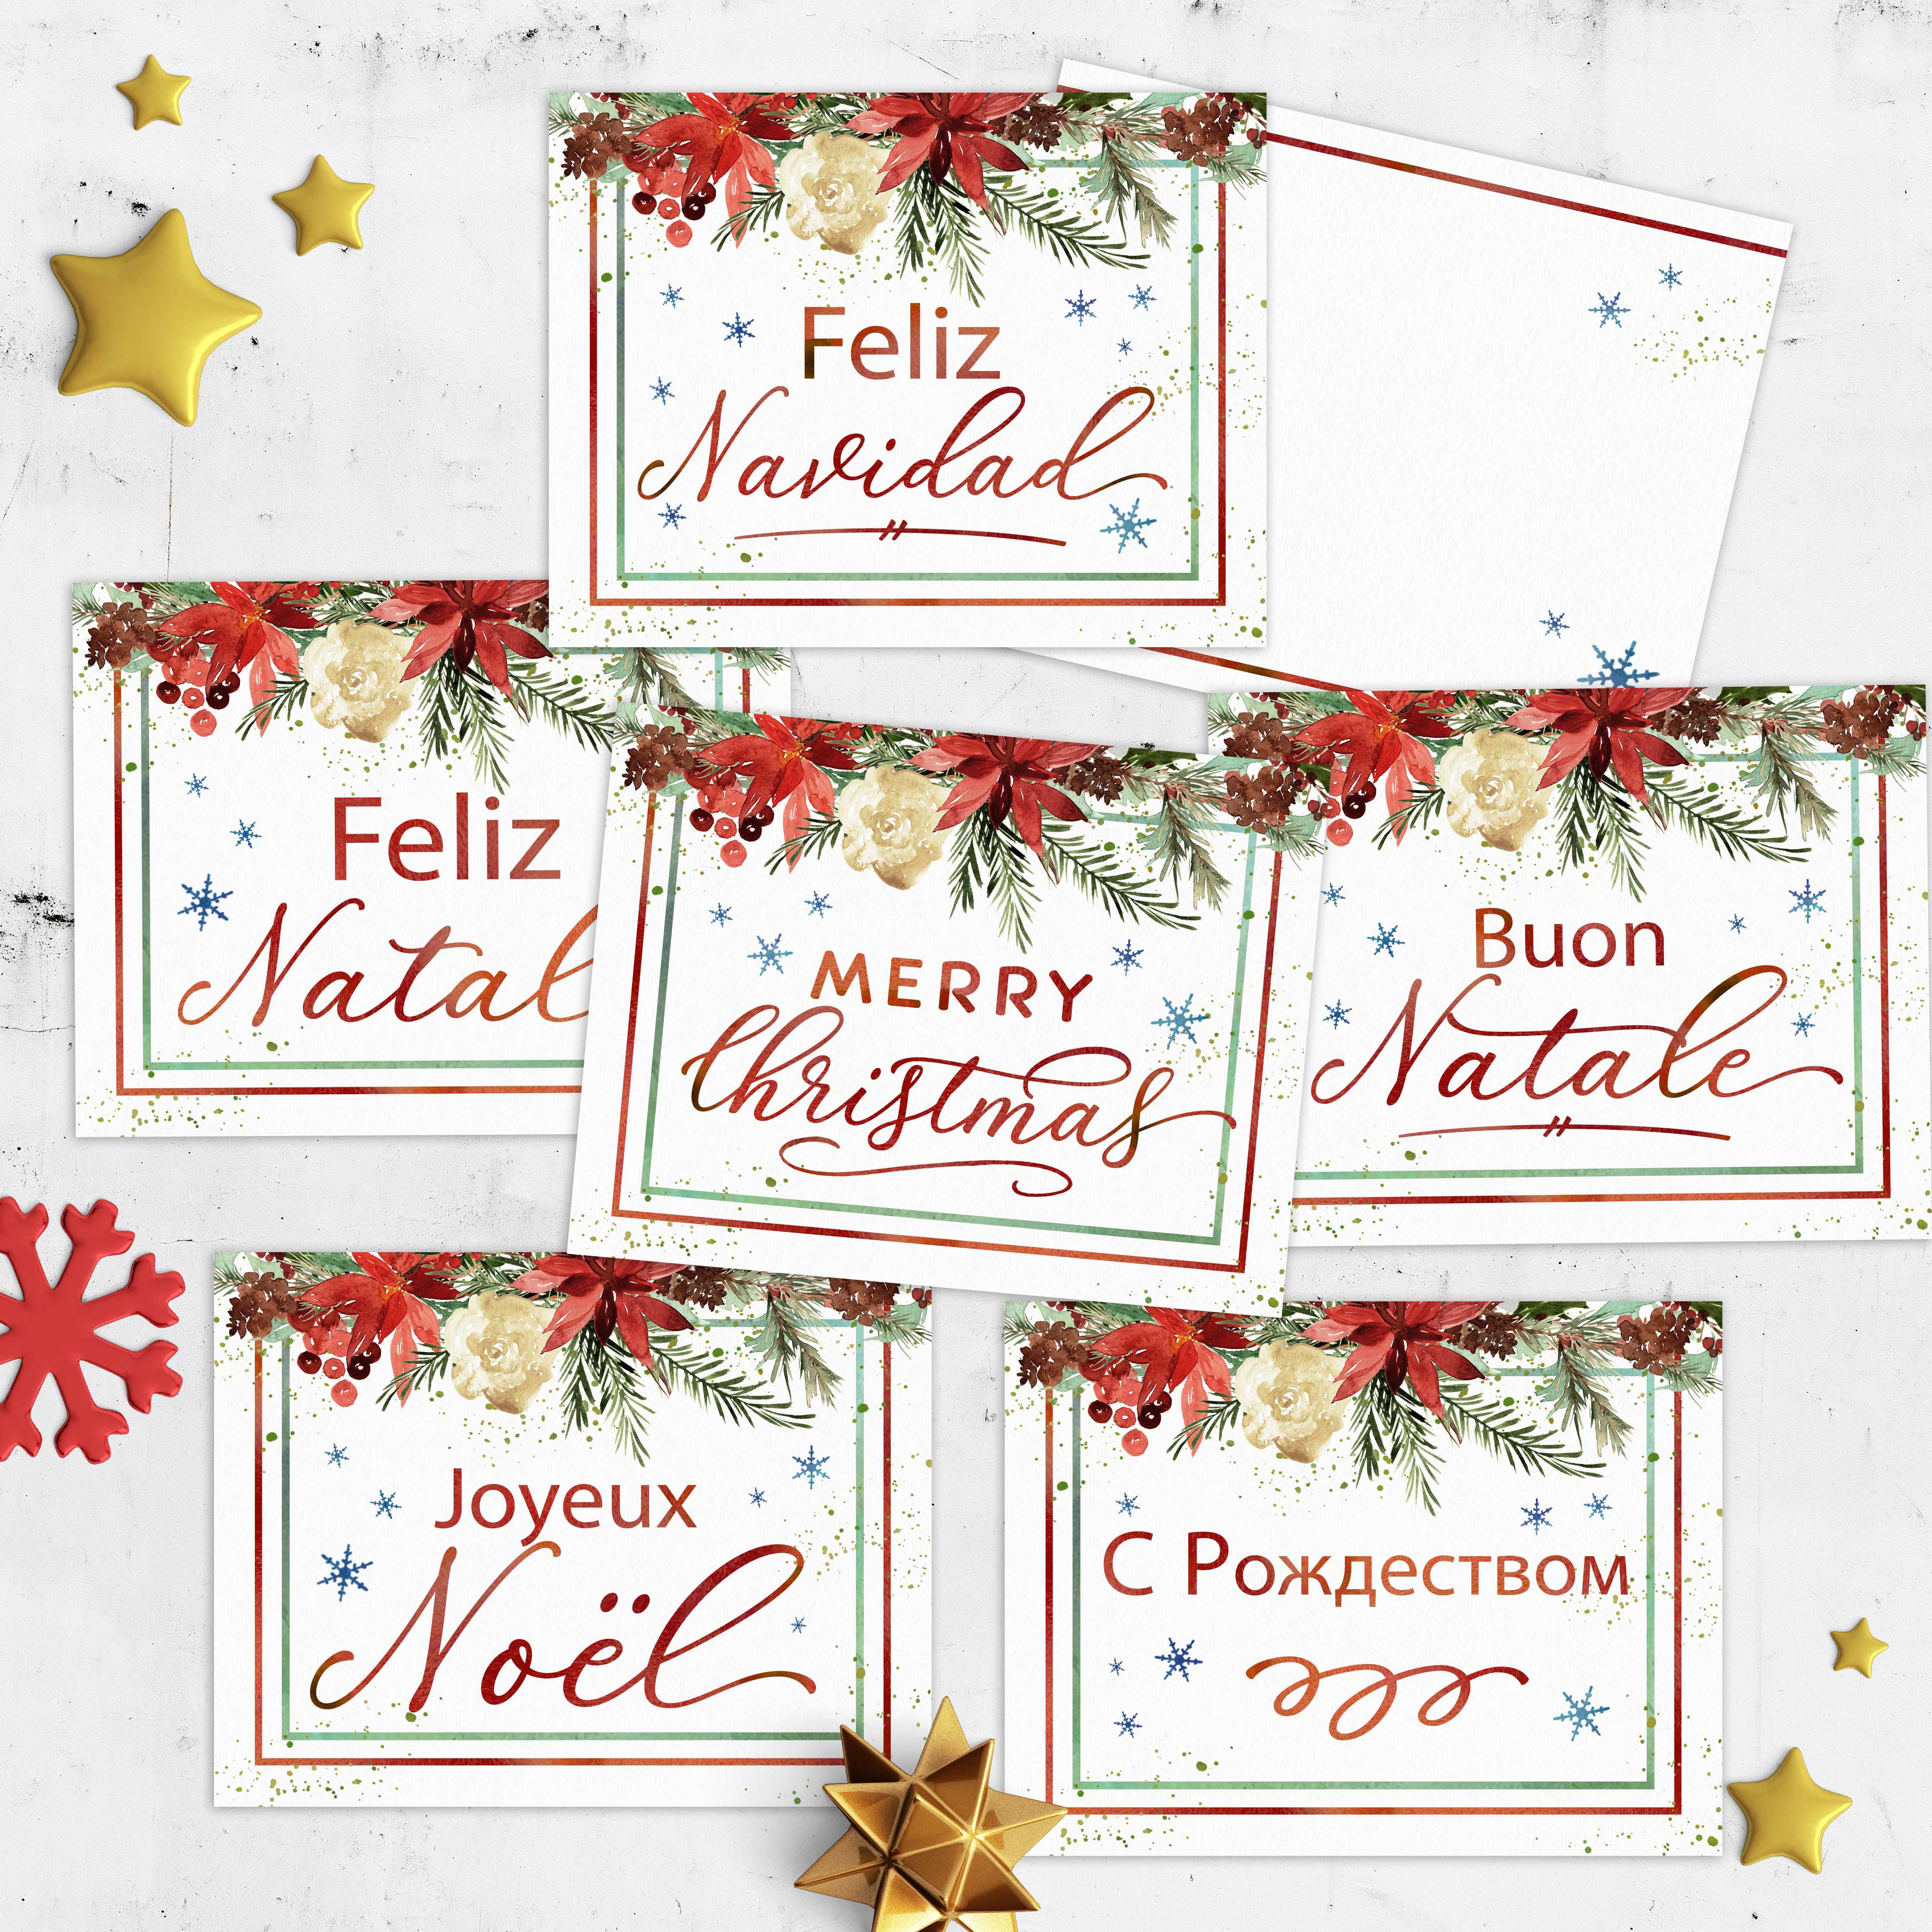 Free-Christmas-Cards-in-English-Russian-French-Italian-